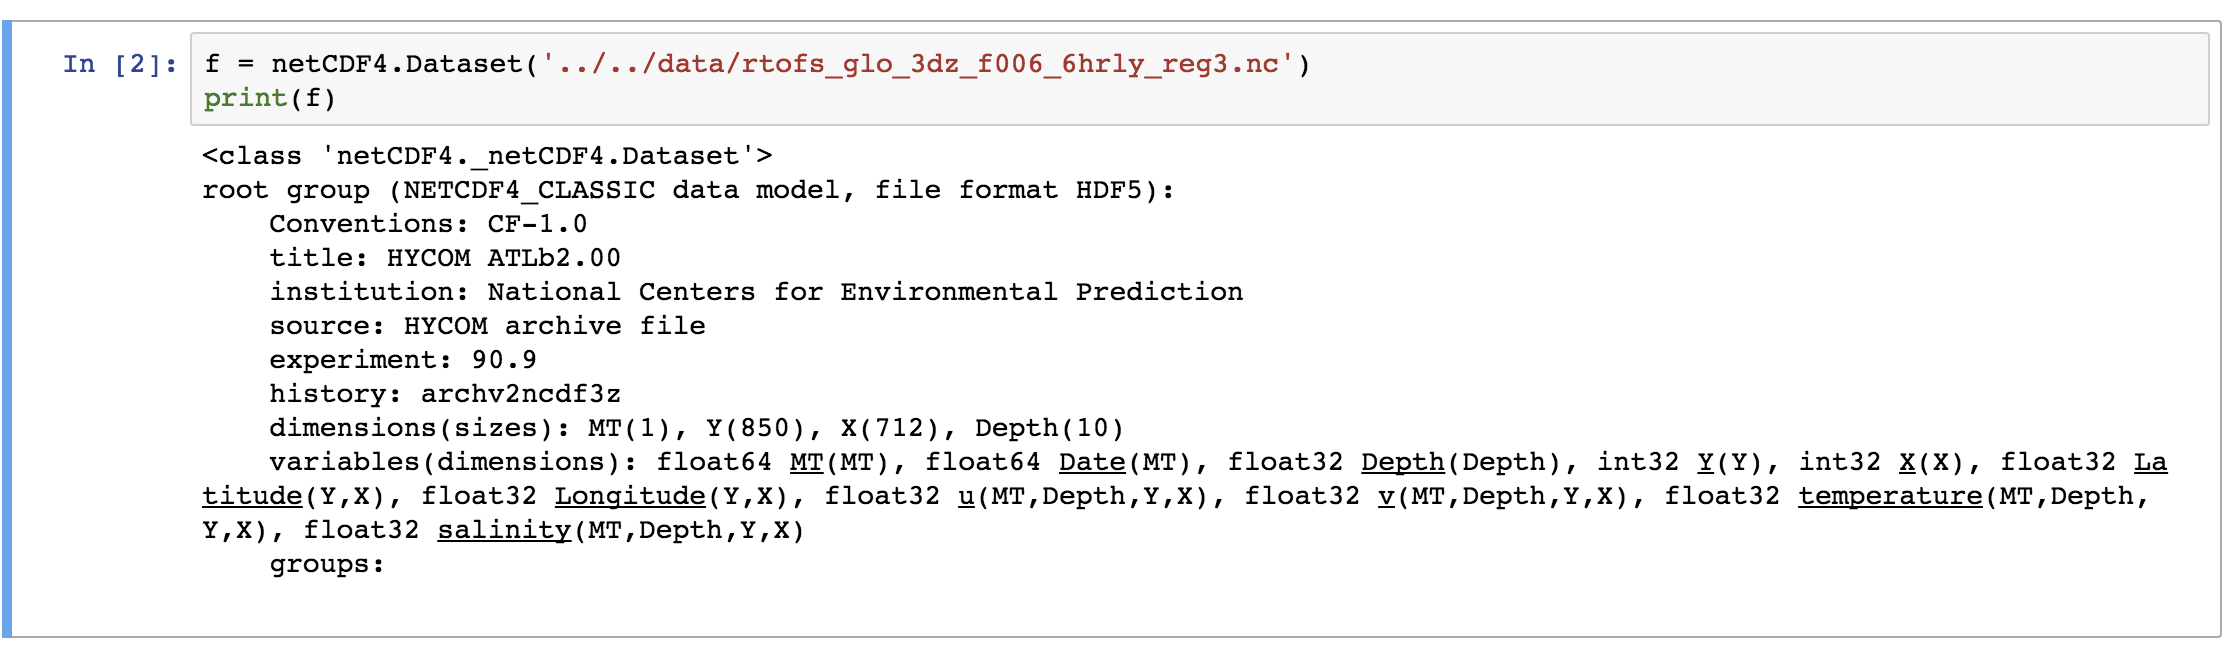 Reading NetCDF4 Data in Python - Institute of Earth Sciences